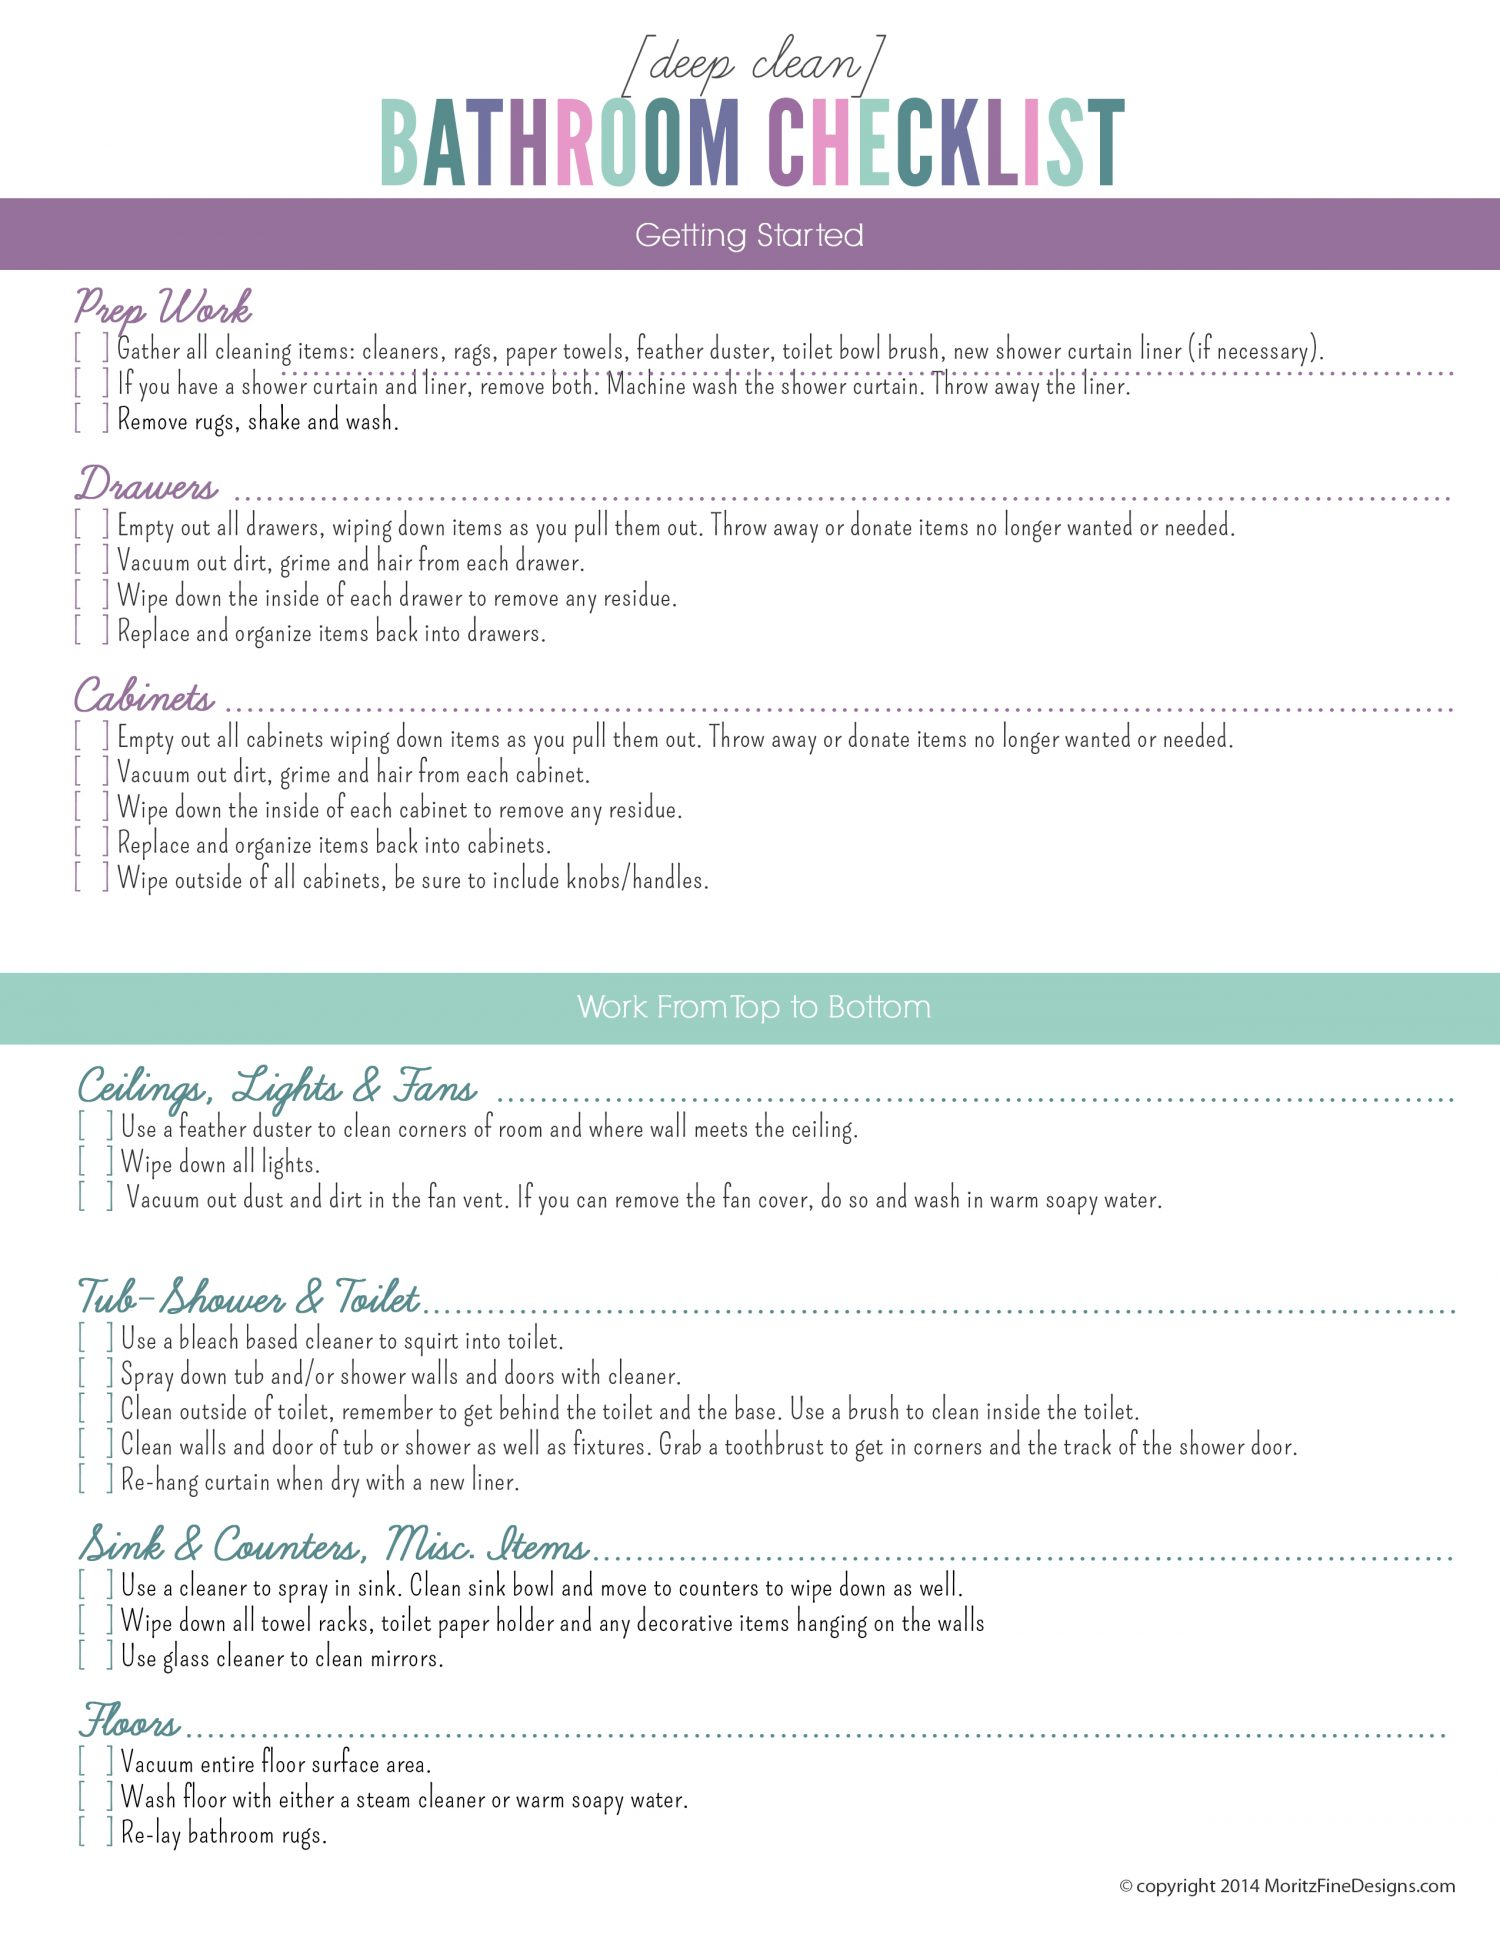 Deep Clean The Bathroom Checklist Free Printable